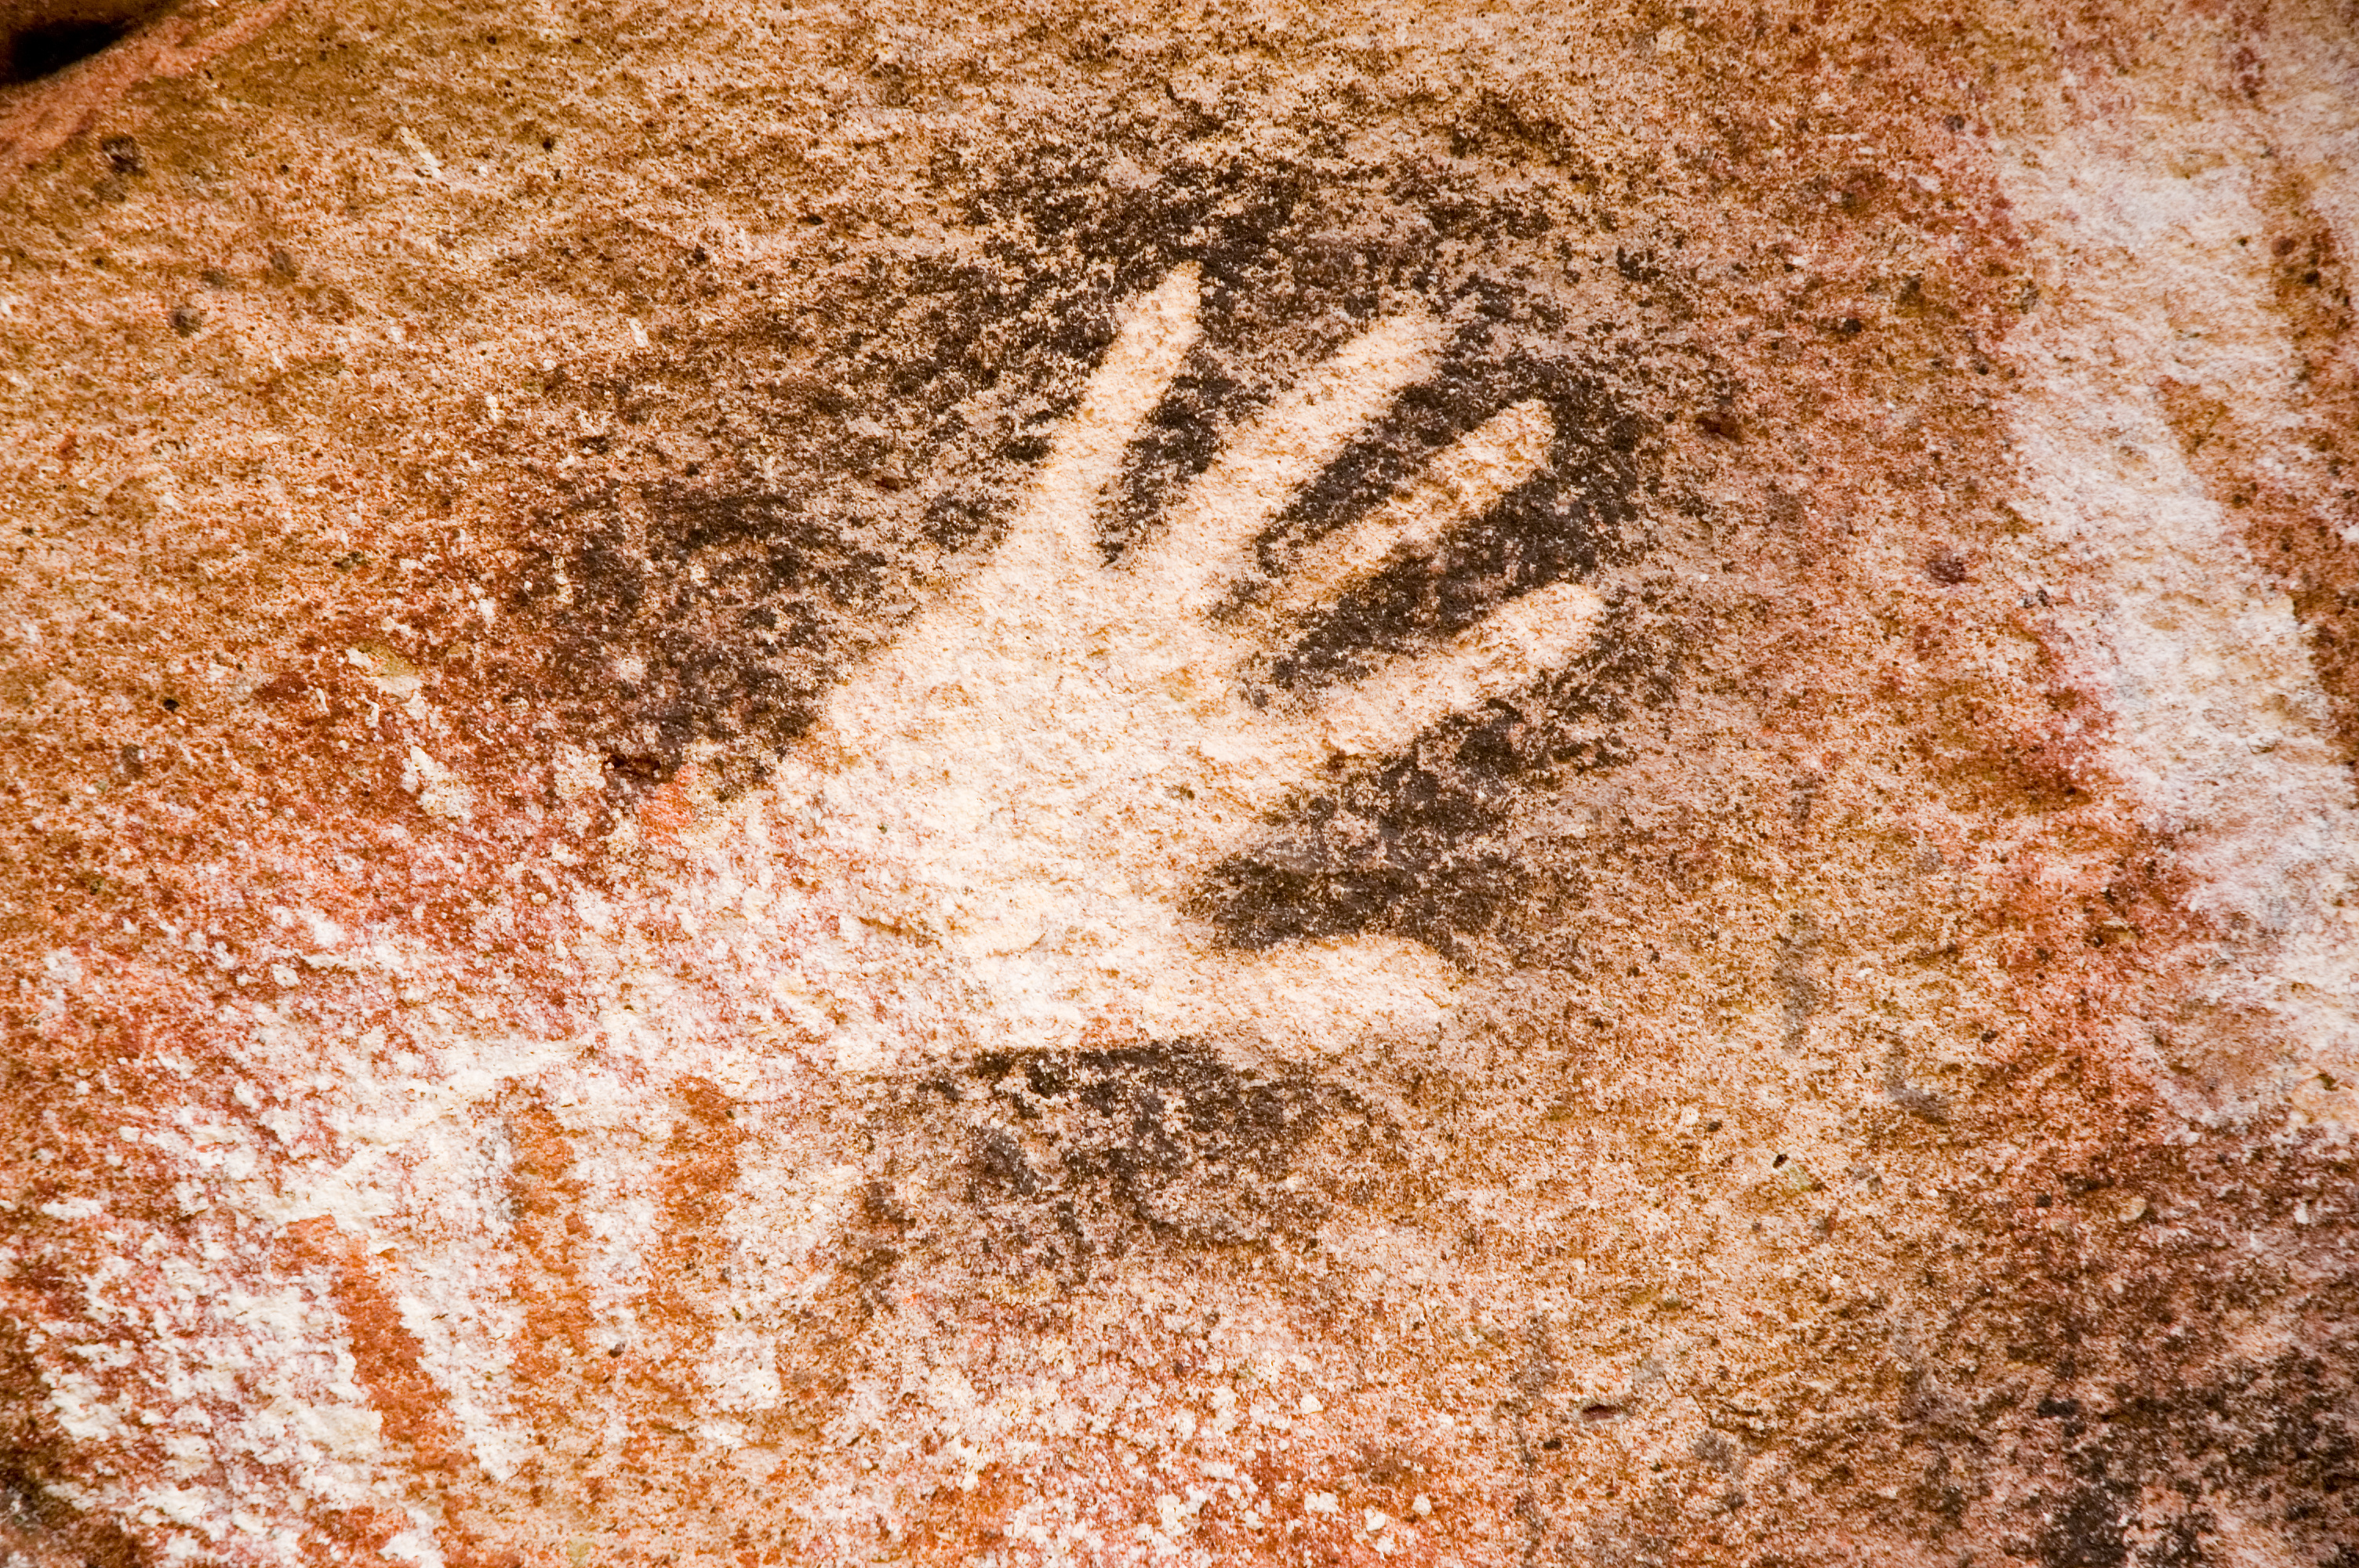 ancient cave painting in patagonia, Argentina.